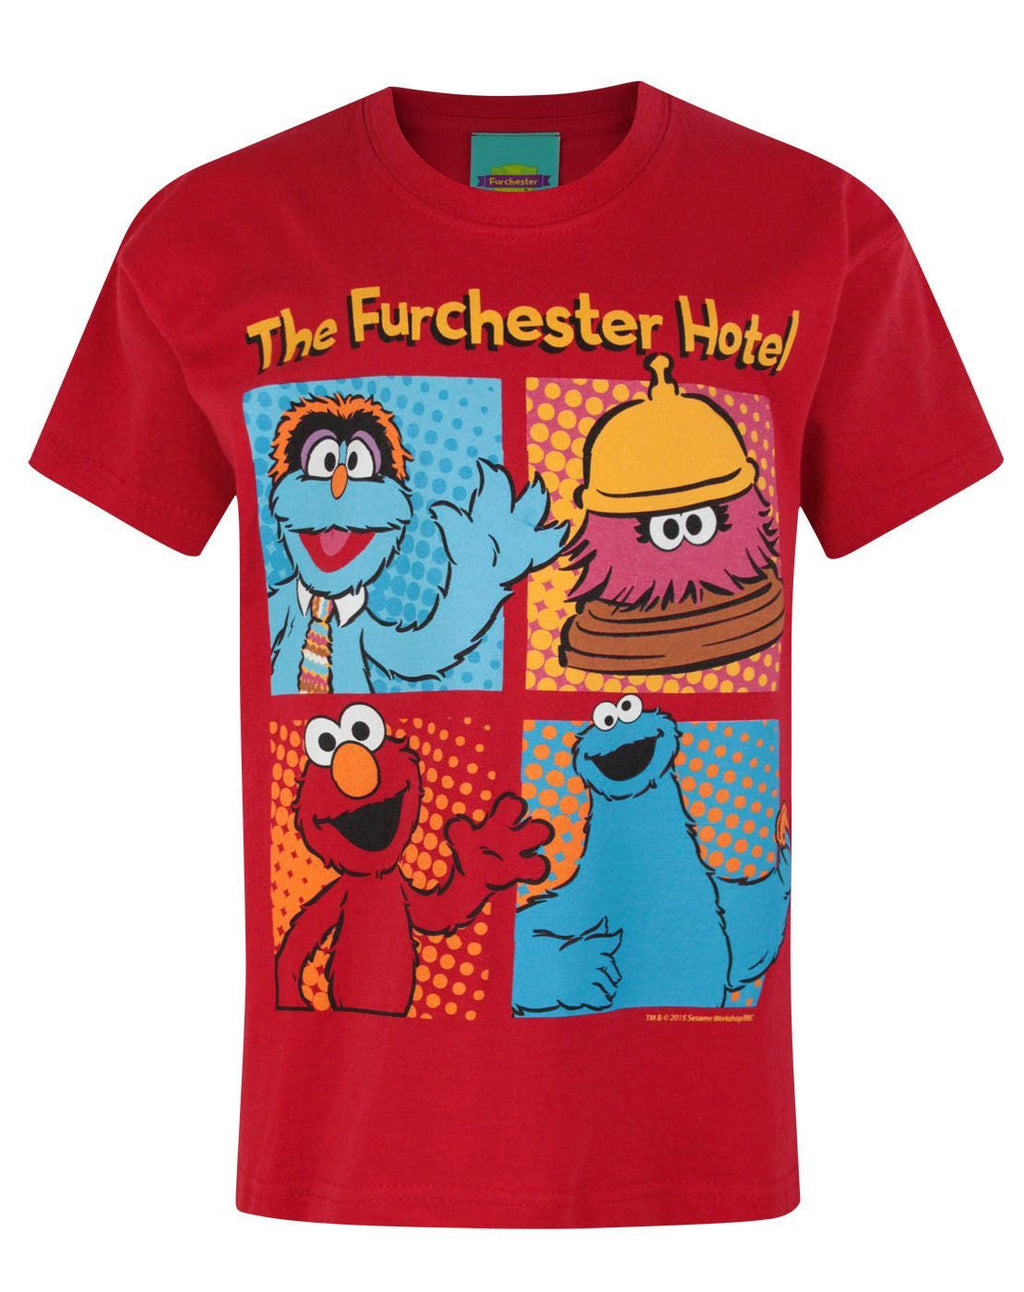 Furchester Hotel Boy's T-Shirt